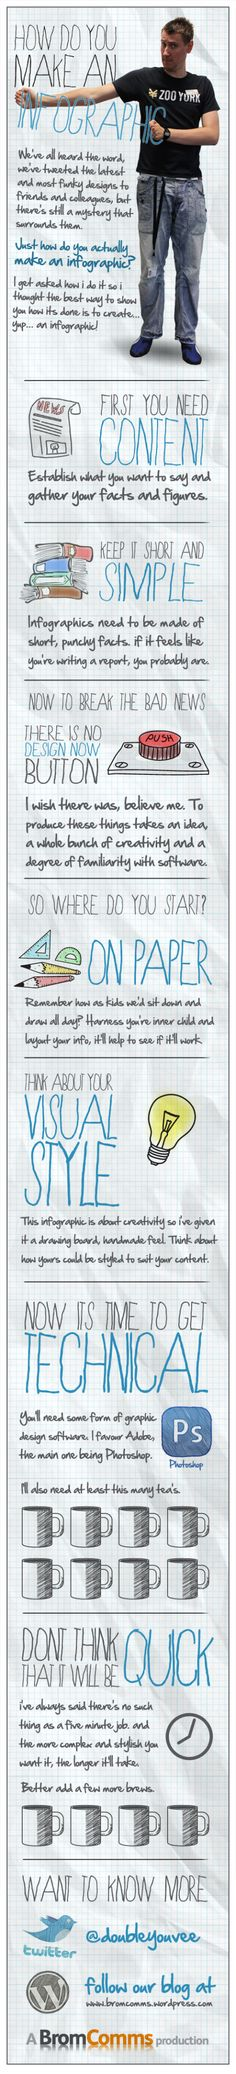 How do you make an infographic? | Repinned by @Piktochart